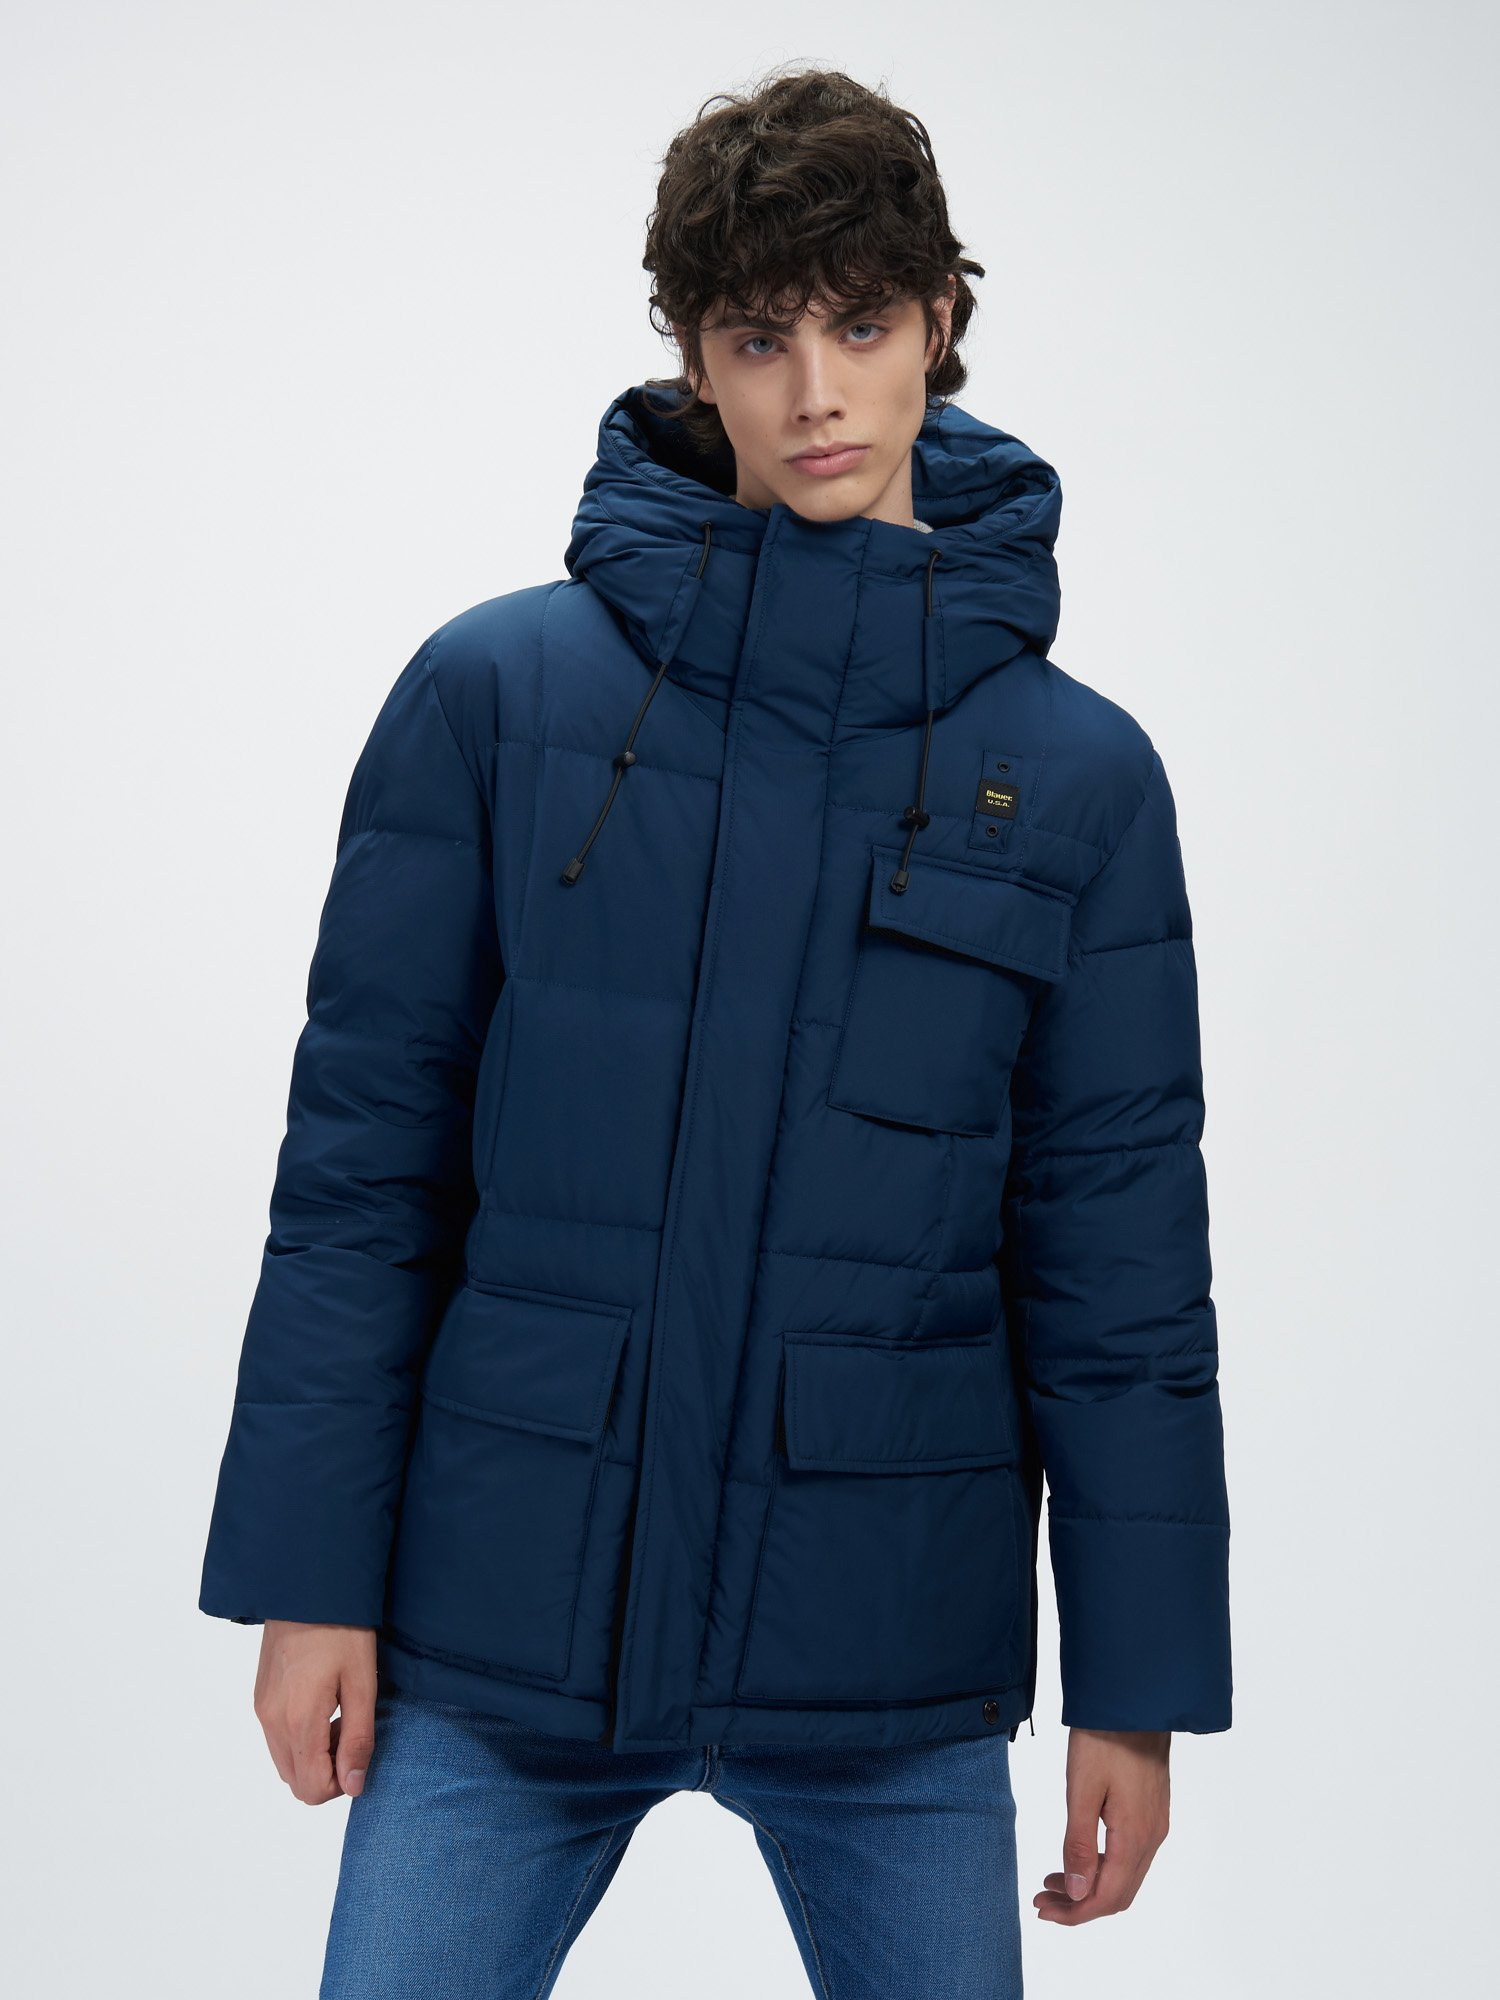 JO LONG DOWN JACKET WITH THREE POCKETS - Blauer